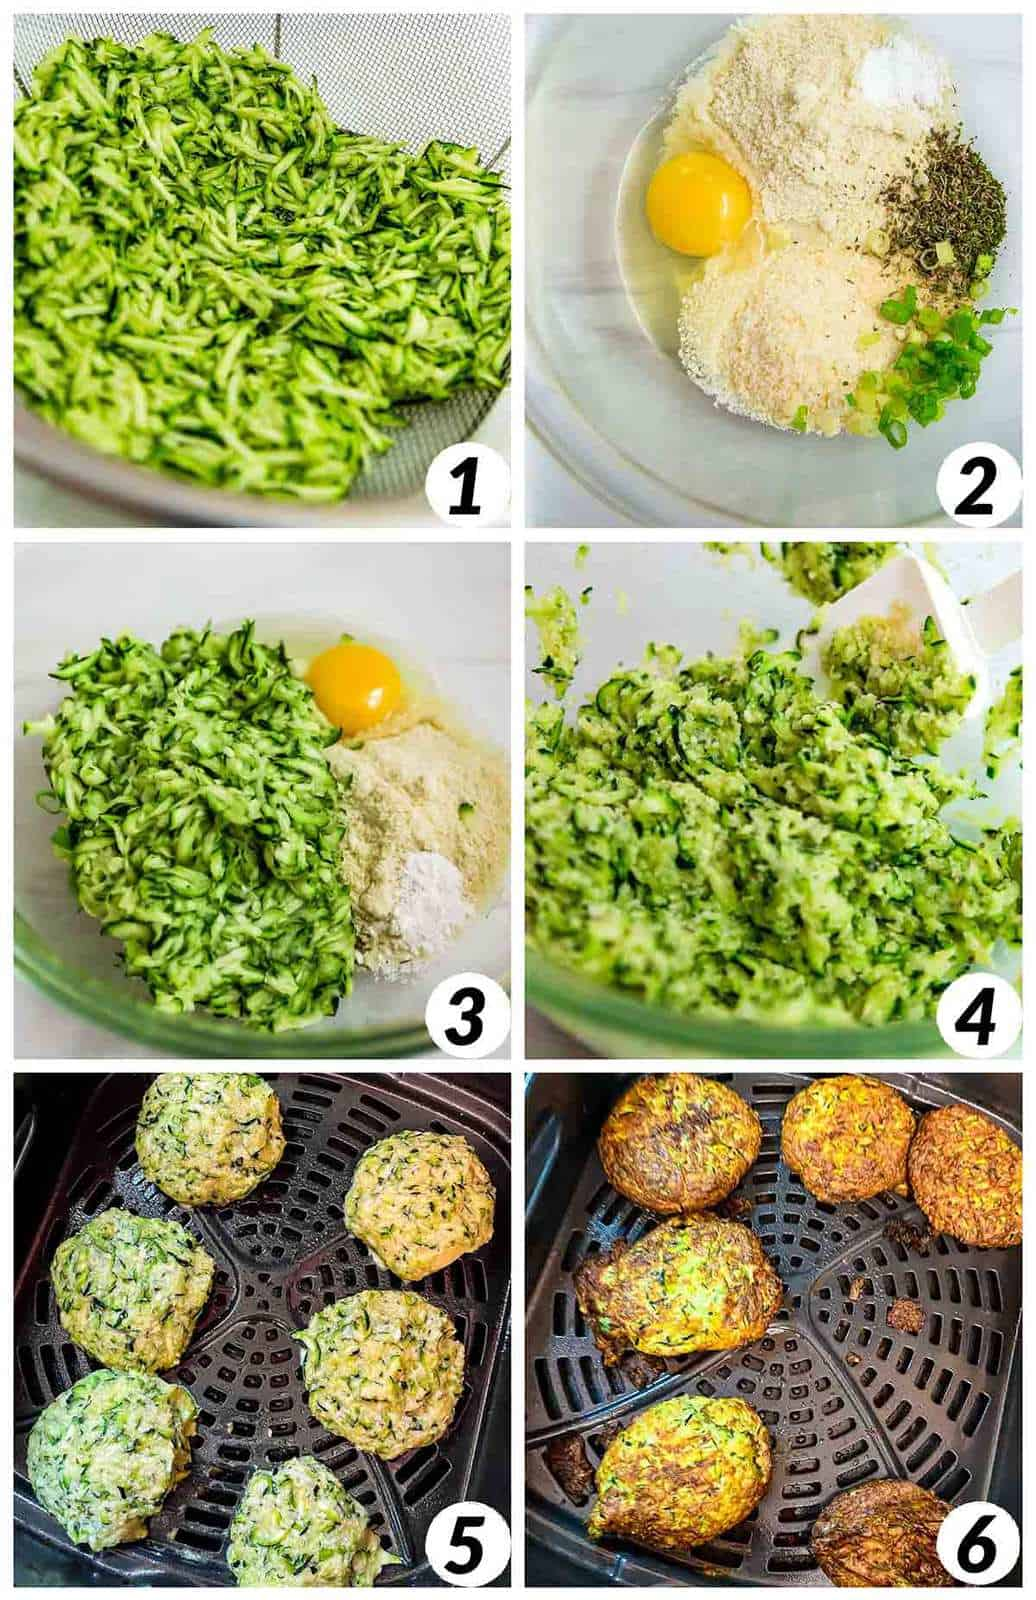 Six panel collage of process shots- shredding zucchini, combining ingredients, forming patties, and baking in the air fryer.